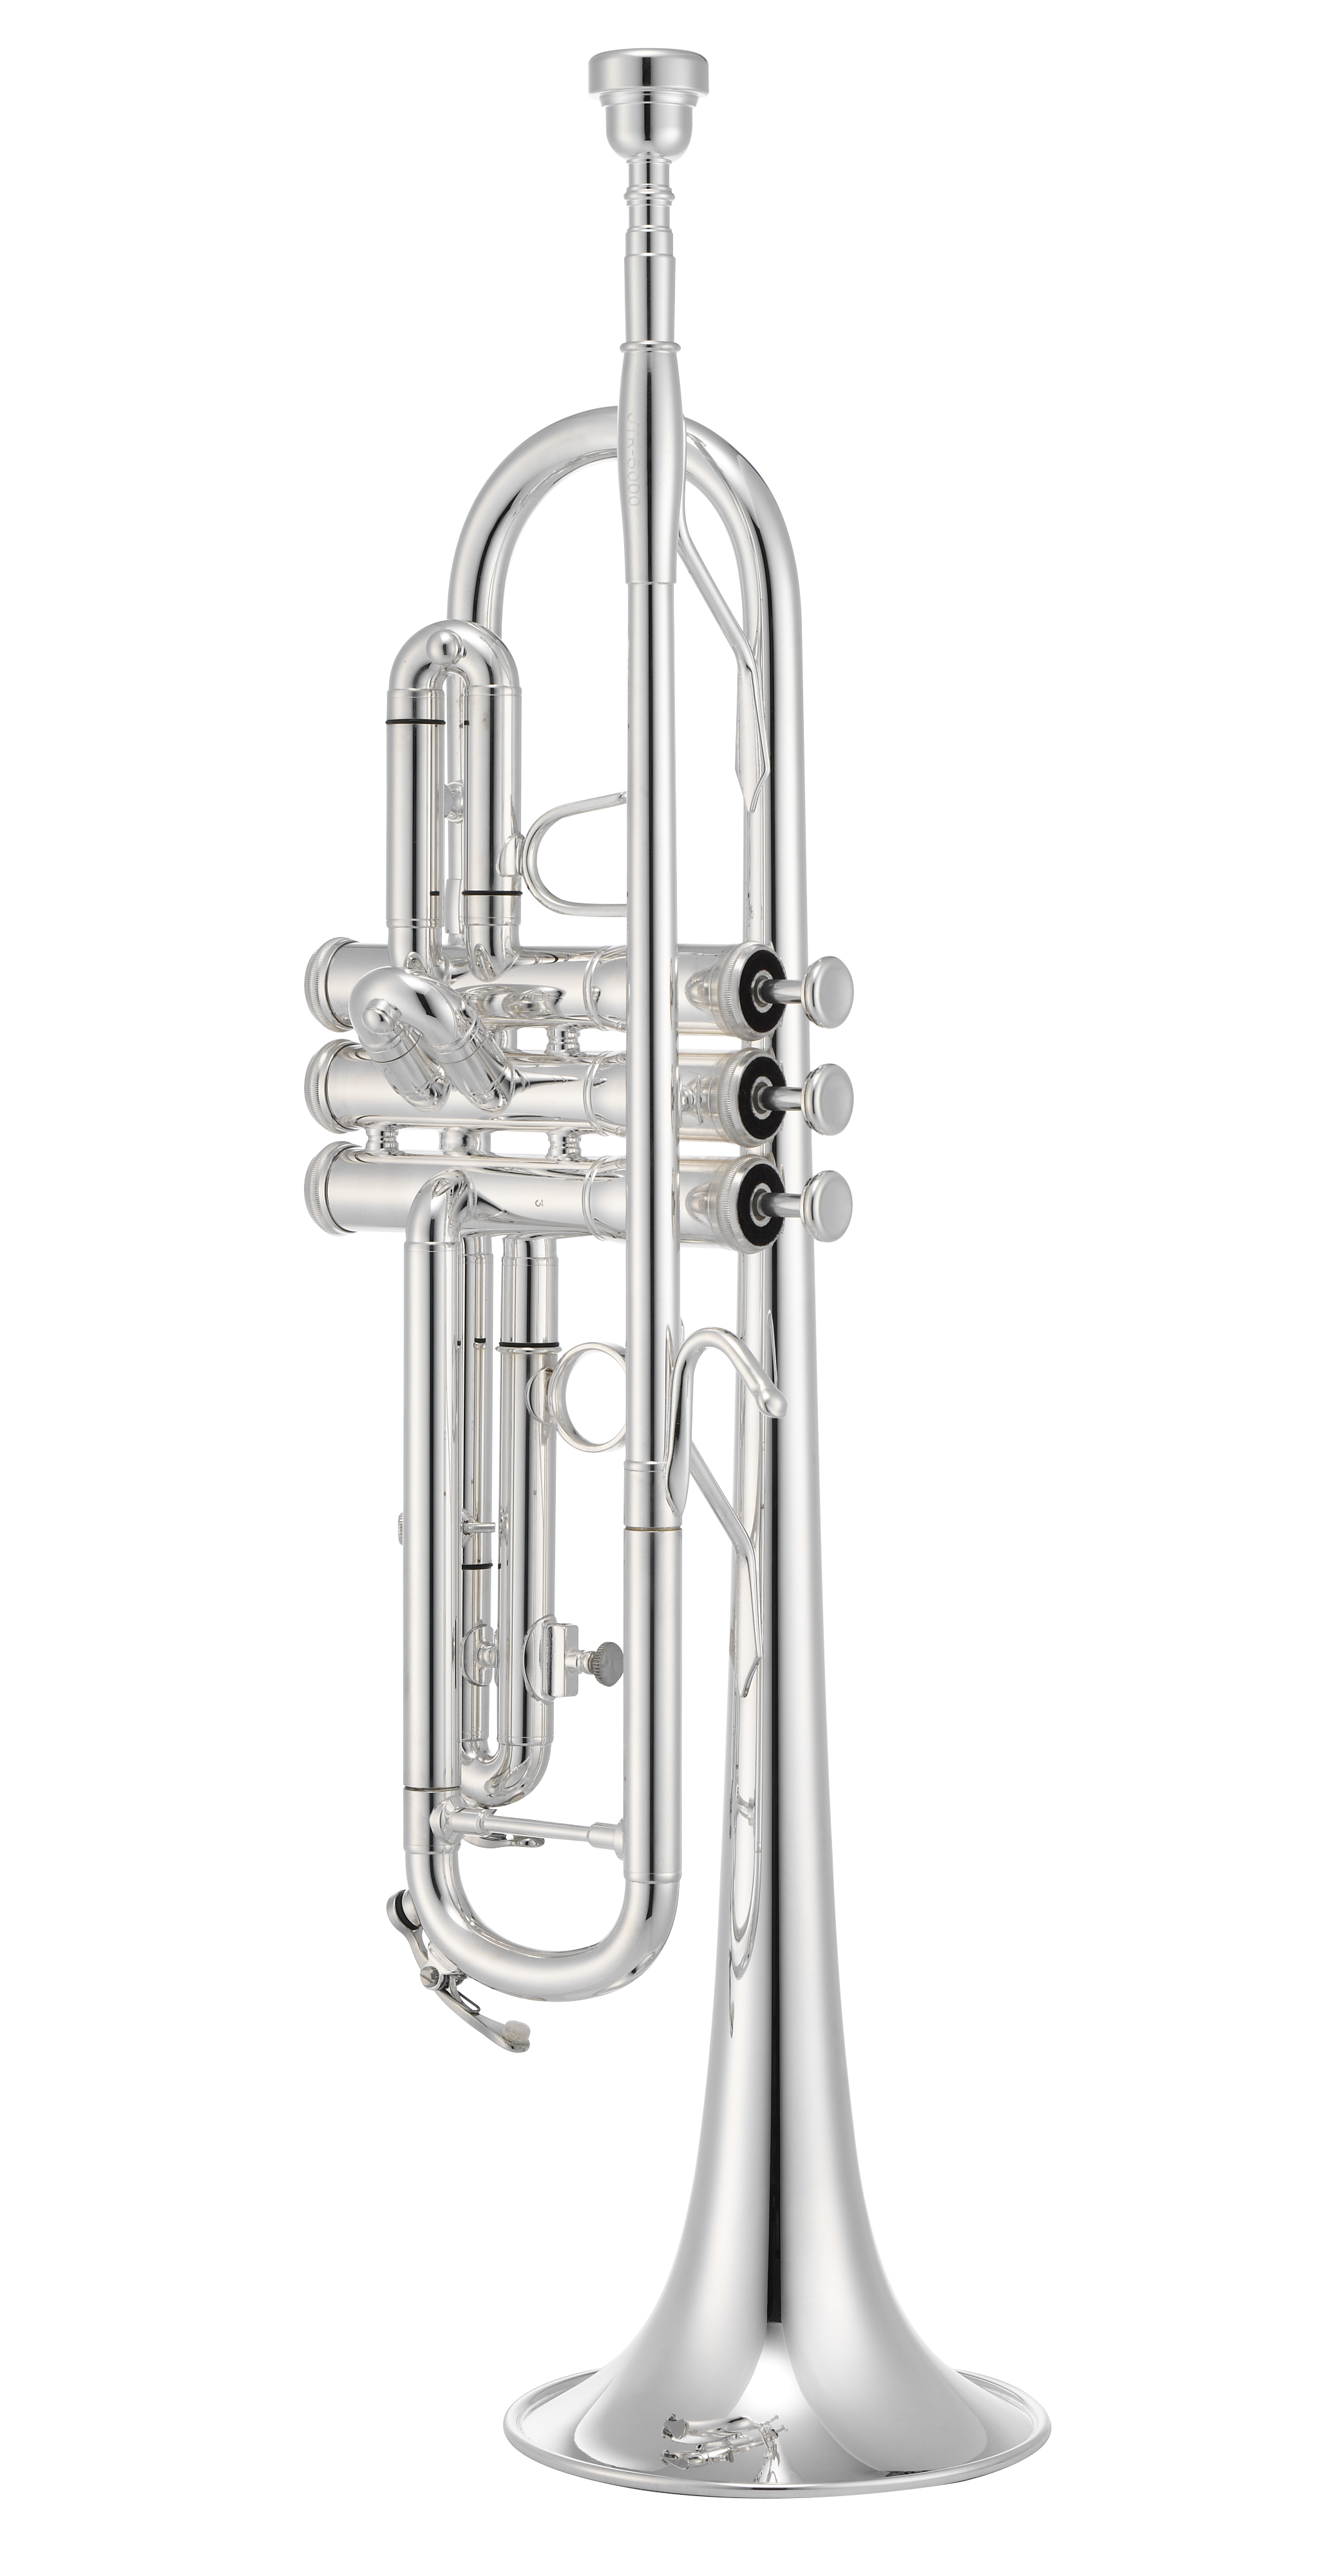 1100 Series JTR1100MS Quantum Marching Trumpet